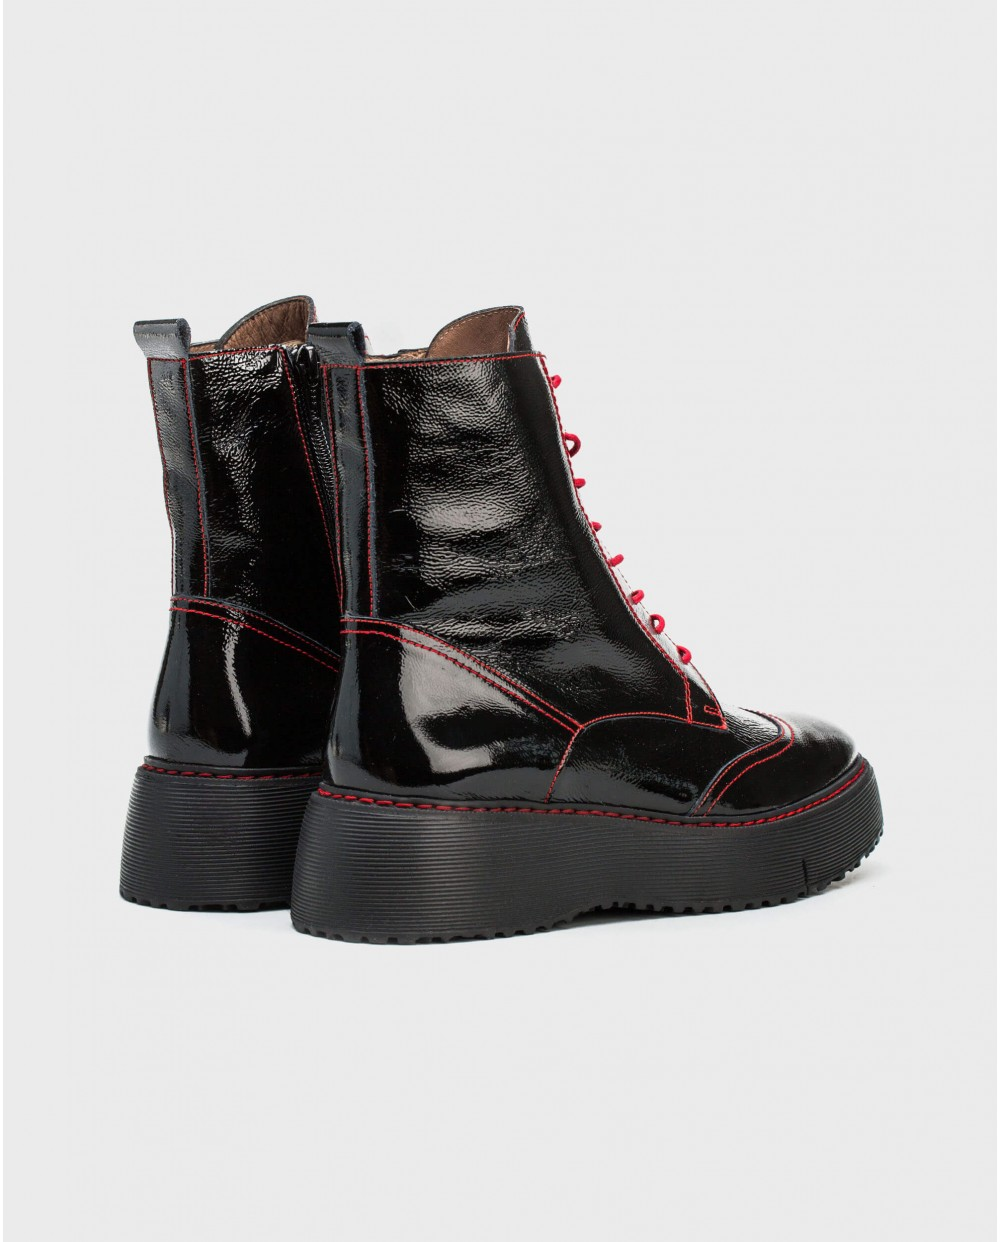 Wonders-Ankle Boots-Patent leather biker ankle boot